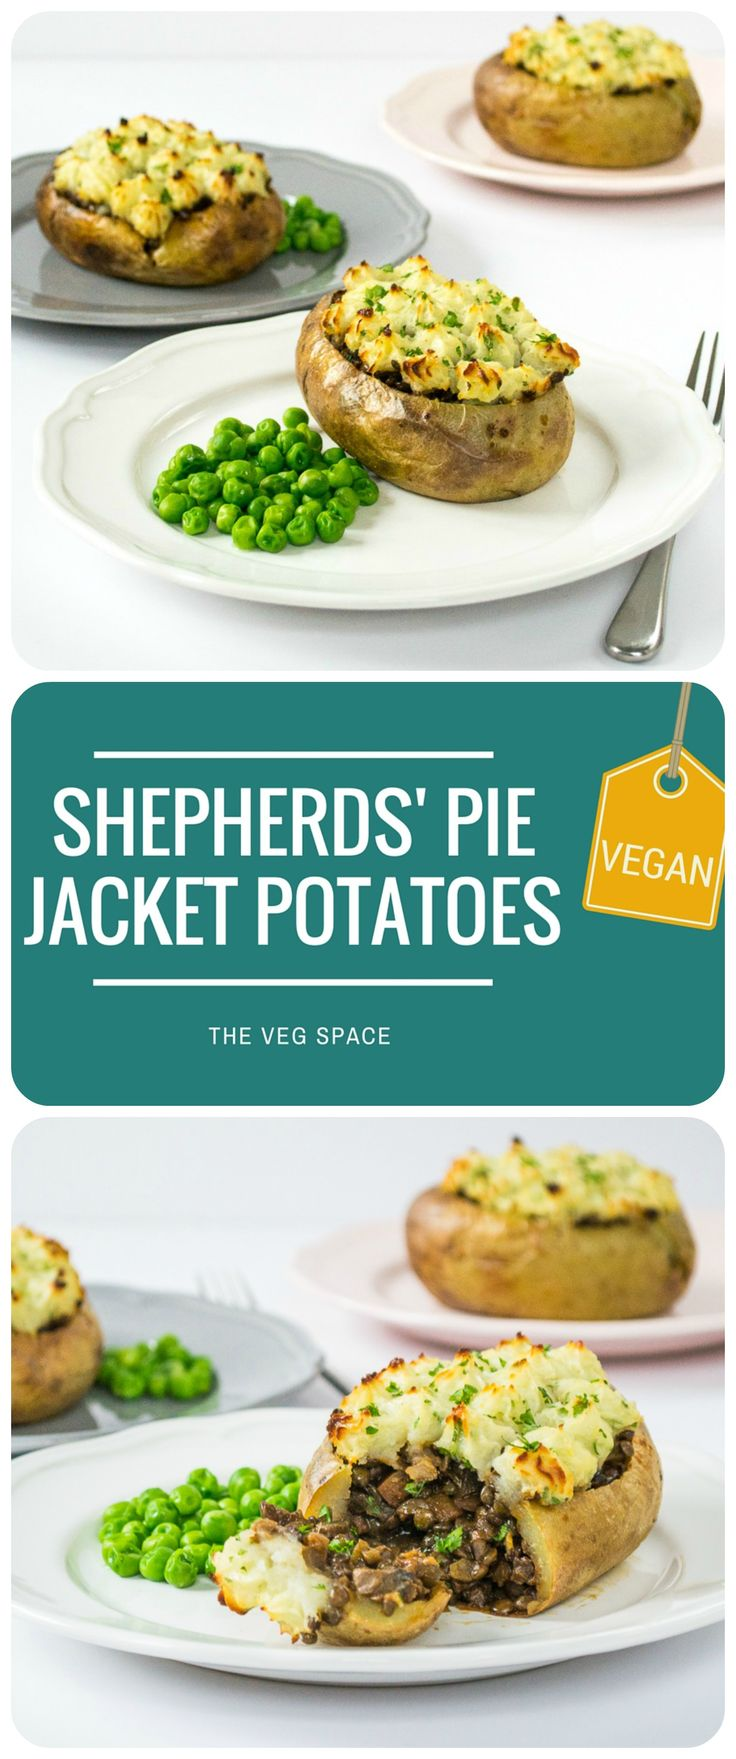 Vegetarian Shepherds Pie Jacket Potatoes (lentils take longer than 30 min, blend a cup to make creamier, serve with peas)